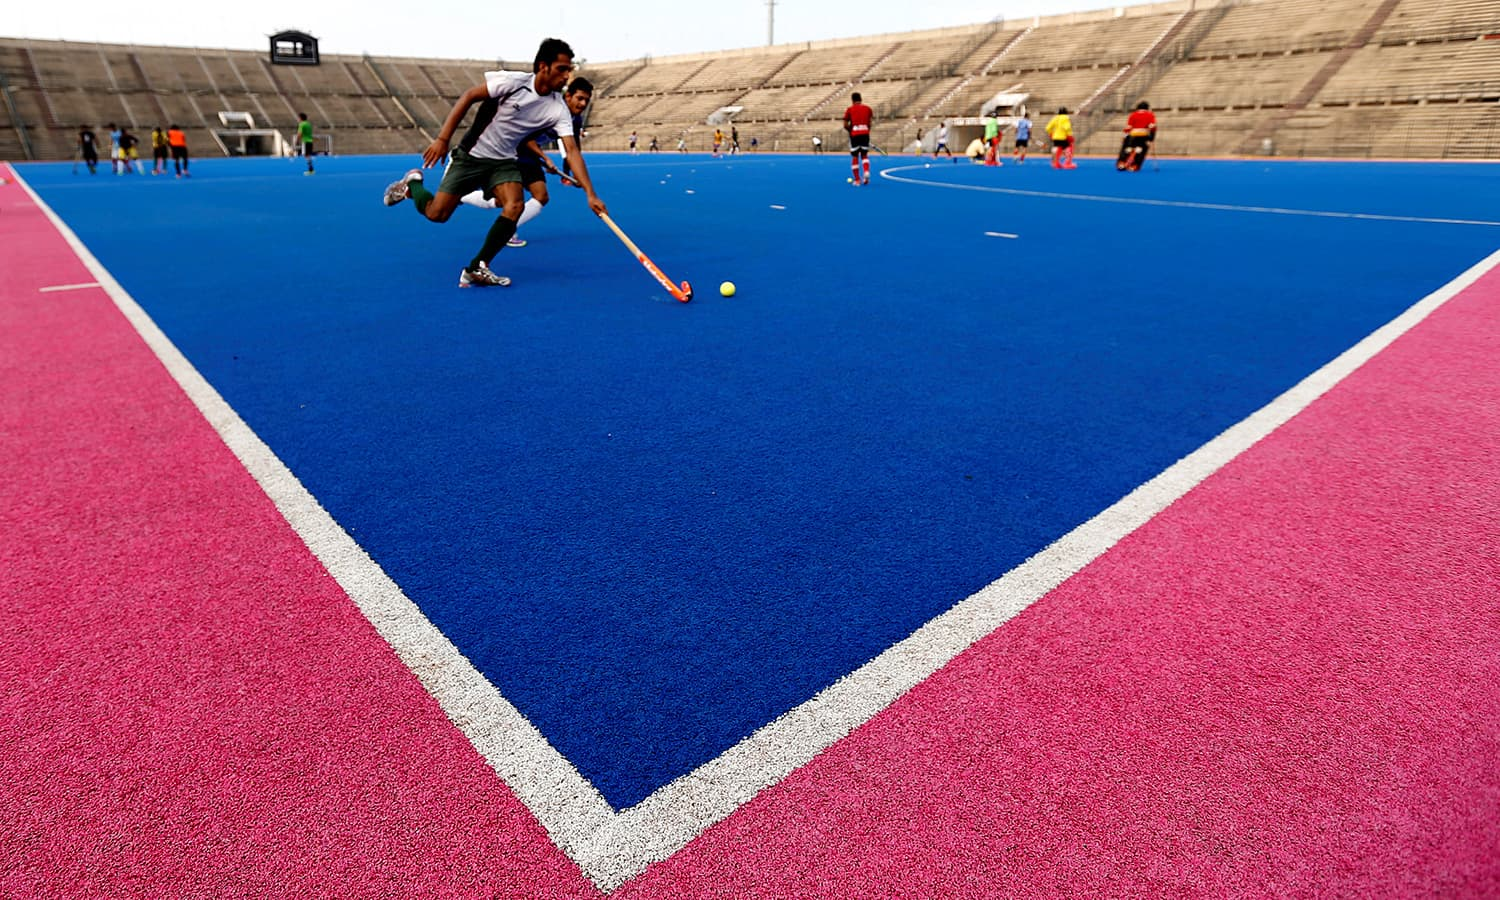 hockey-players-train-at-the-gaddafi-field-hockey-stadium-in-lahore-2